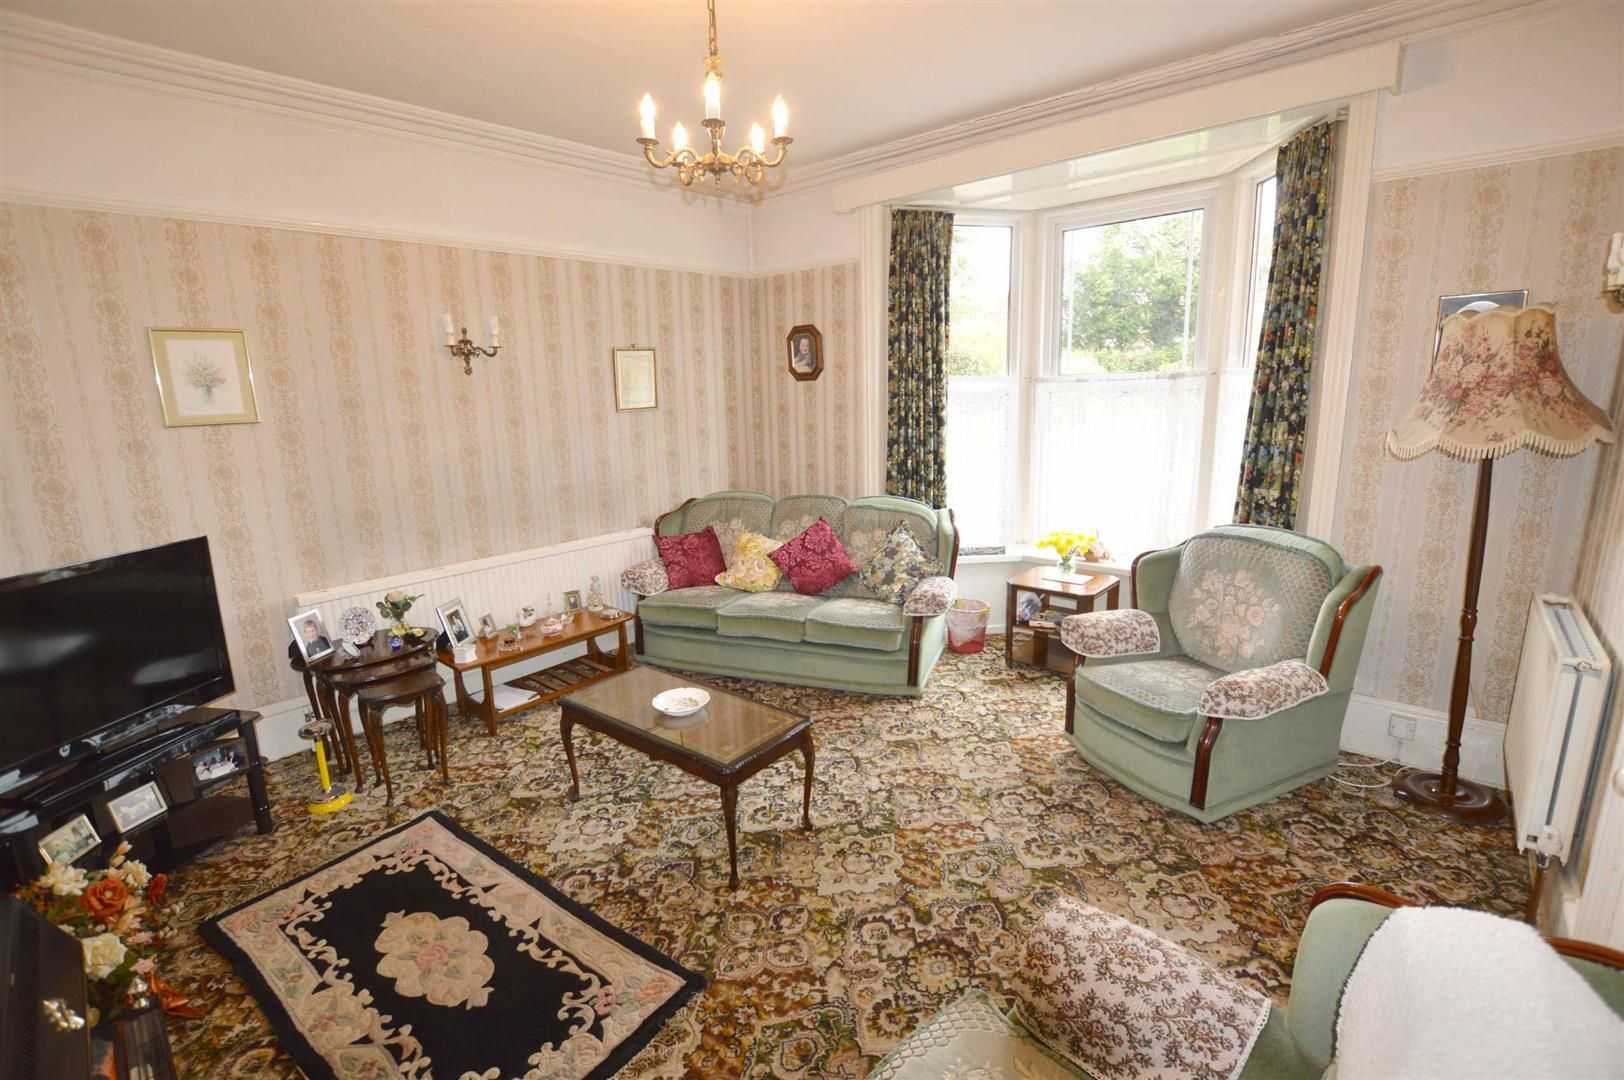 6 bed semi-detached for sale in Leominster  - Property Image 3